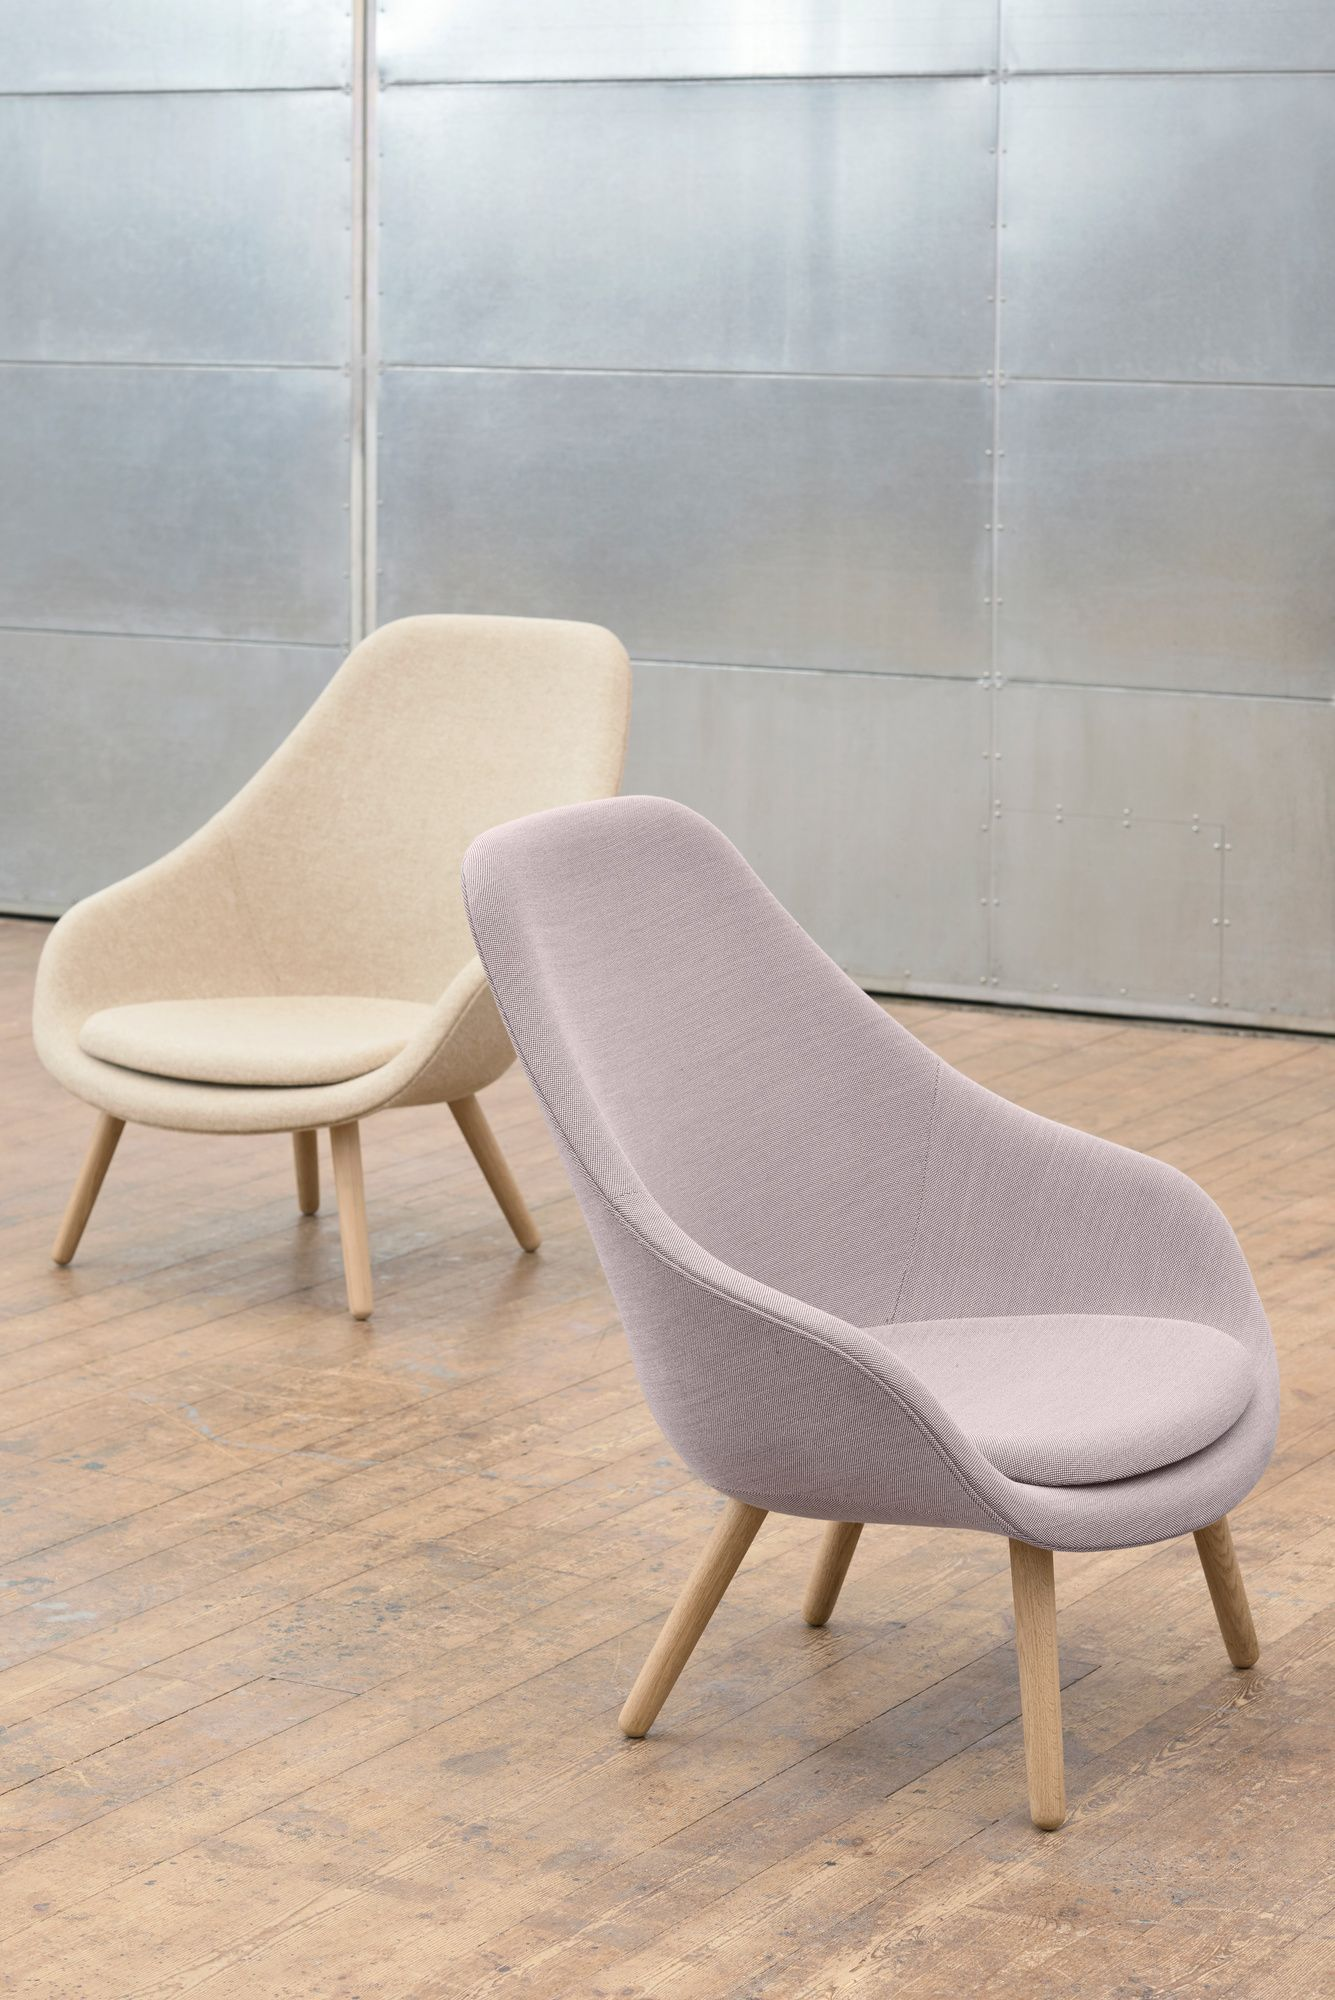 Hay Lounge Stoel.Hay About A Lounge Chair High Aal93 Fauteuil In 2019 Huge Dc